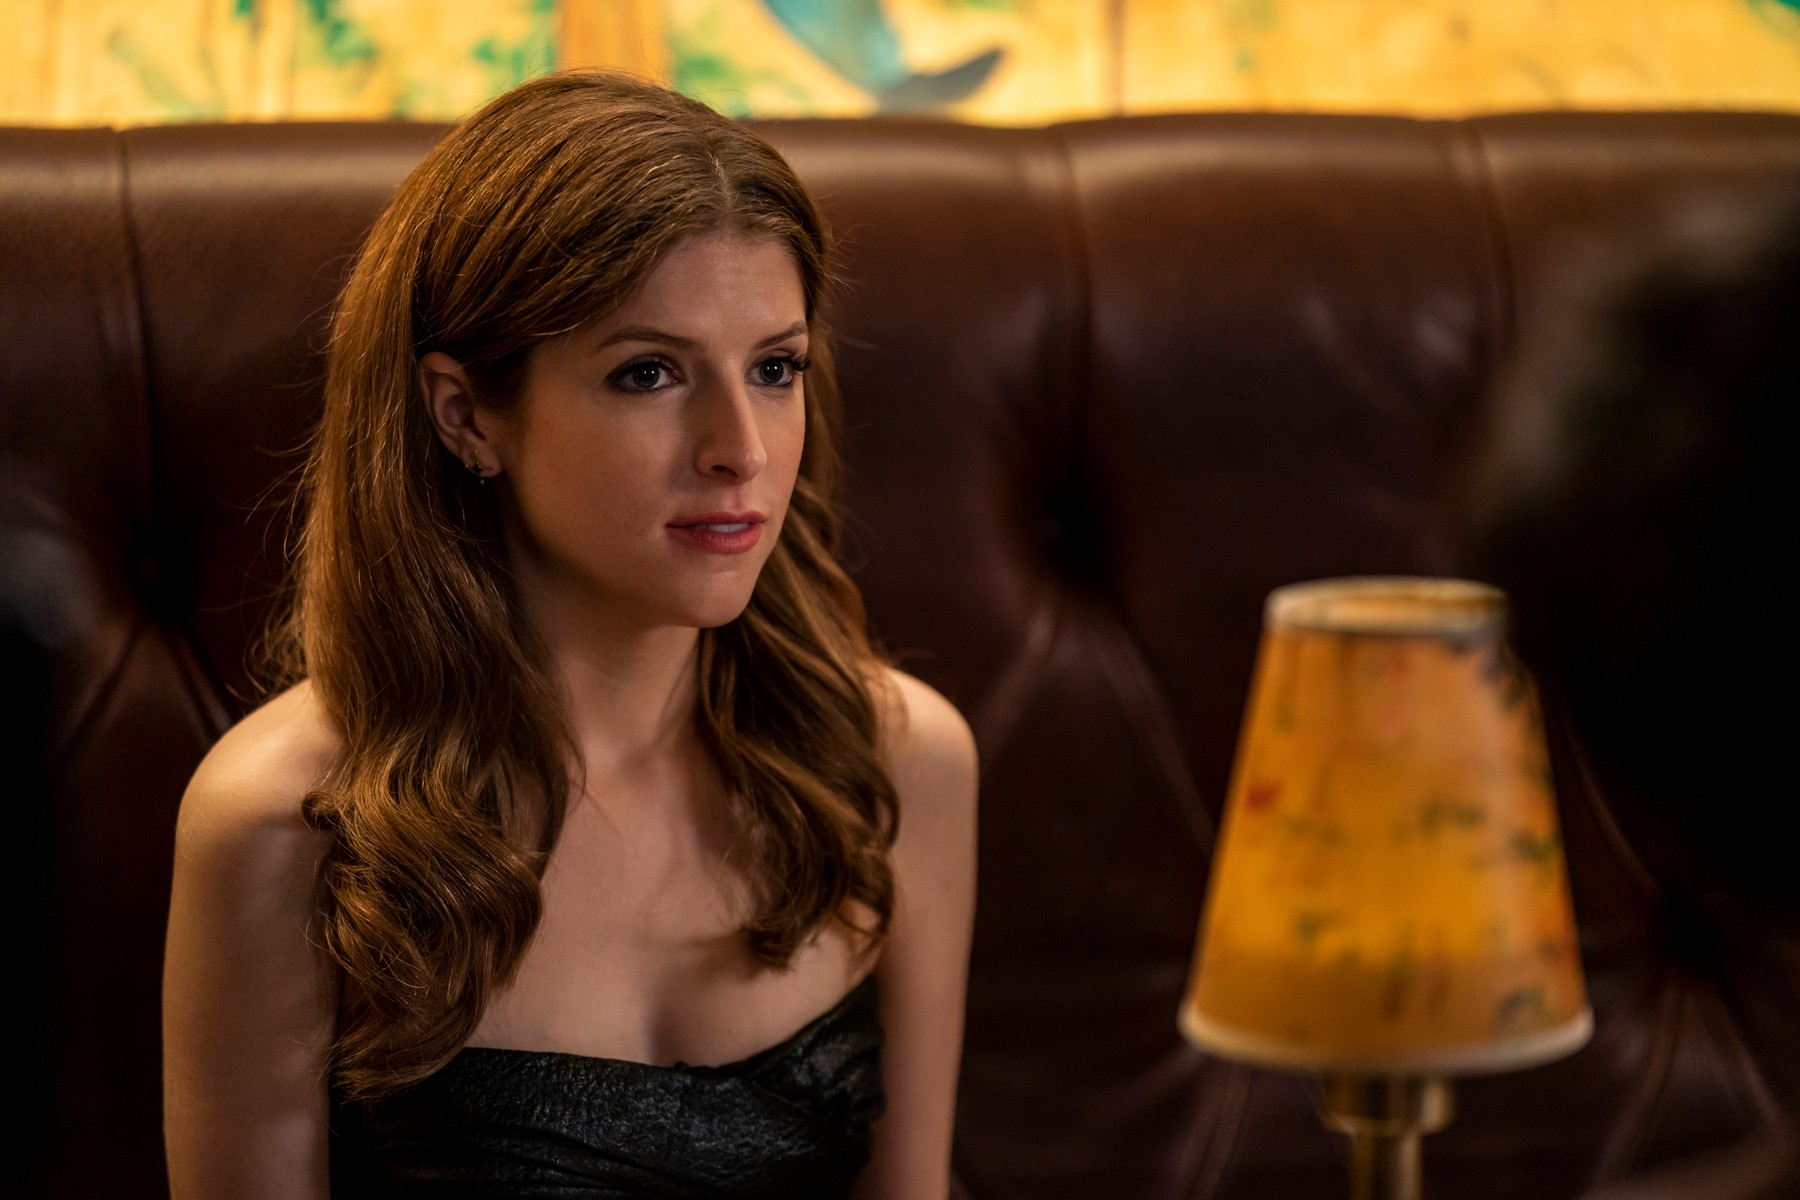 USA. Anna Kendrick in the ©HBO Max new series : Love Life (2020). Plot: A  fresh take on a romantic comedy anthology series about the journey from first love to lasting love, and how the people we're with along the way make us into who we are when we finally end up with someone forever.,Image: 527719311, License: Rights-managed, Restrictions: Supplied by Landmark Media. Editorial Only. Landmark Media is not the copyright owner of these Film or TV stills but provides a service only for recognised Media outlets., Model Release: no, Credit line: Supplied by LMK / Landmark / Profimedia